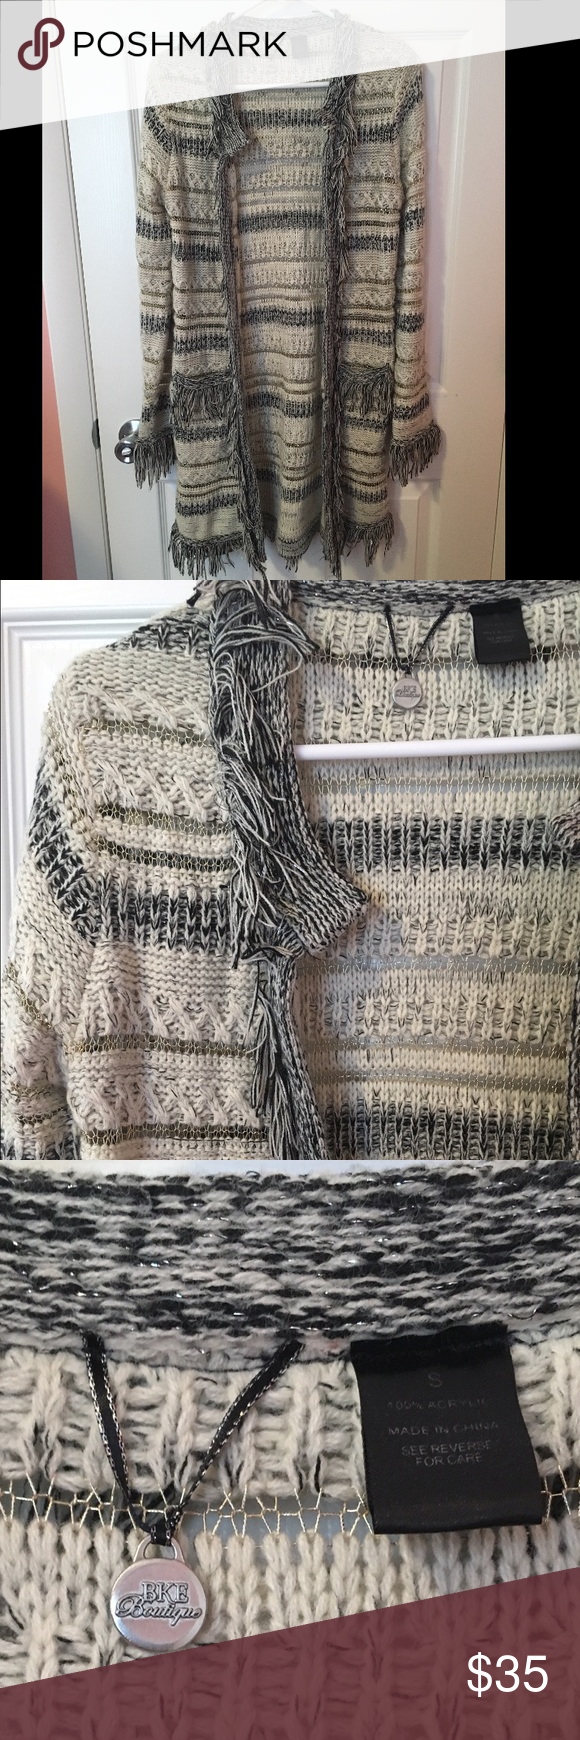 BKE Boutique sweater size Small Perfect condition, worn twice for a couple hours. Adorable and super comfortable. Size small, smoke free home. BKE Sweaters Cardigans